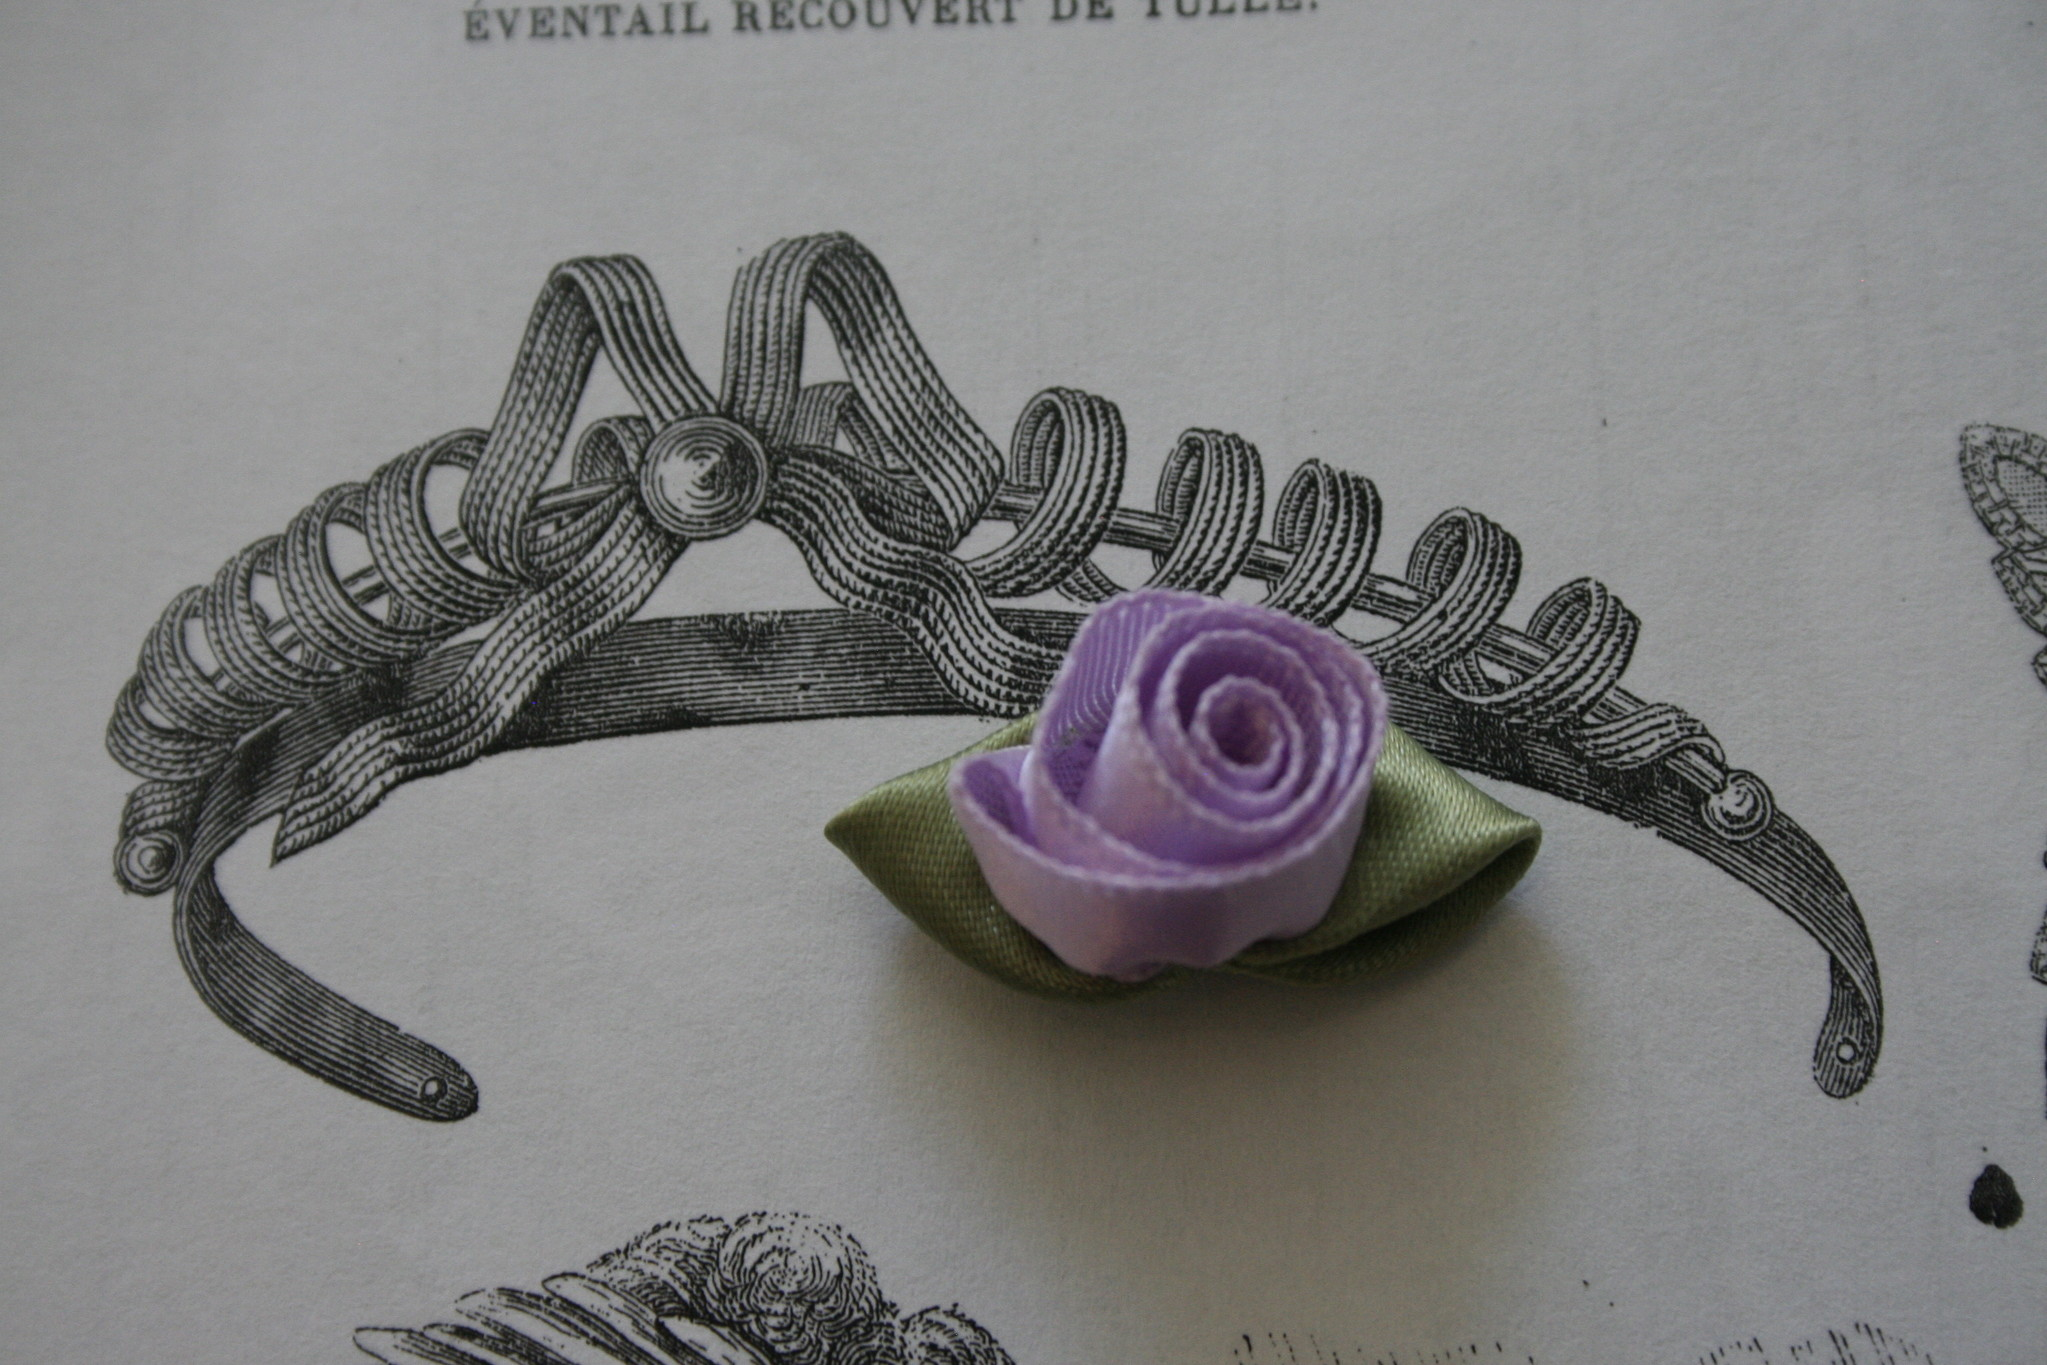 Lilac satin roses with leaves.